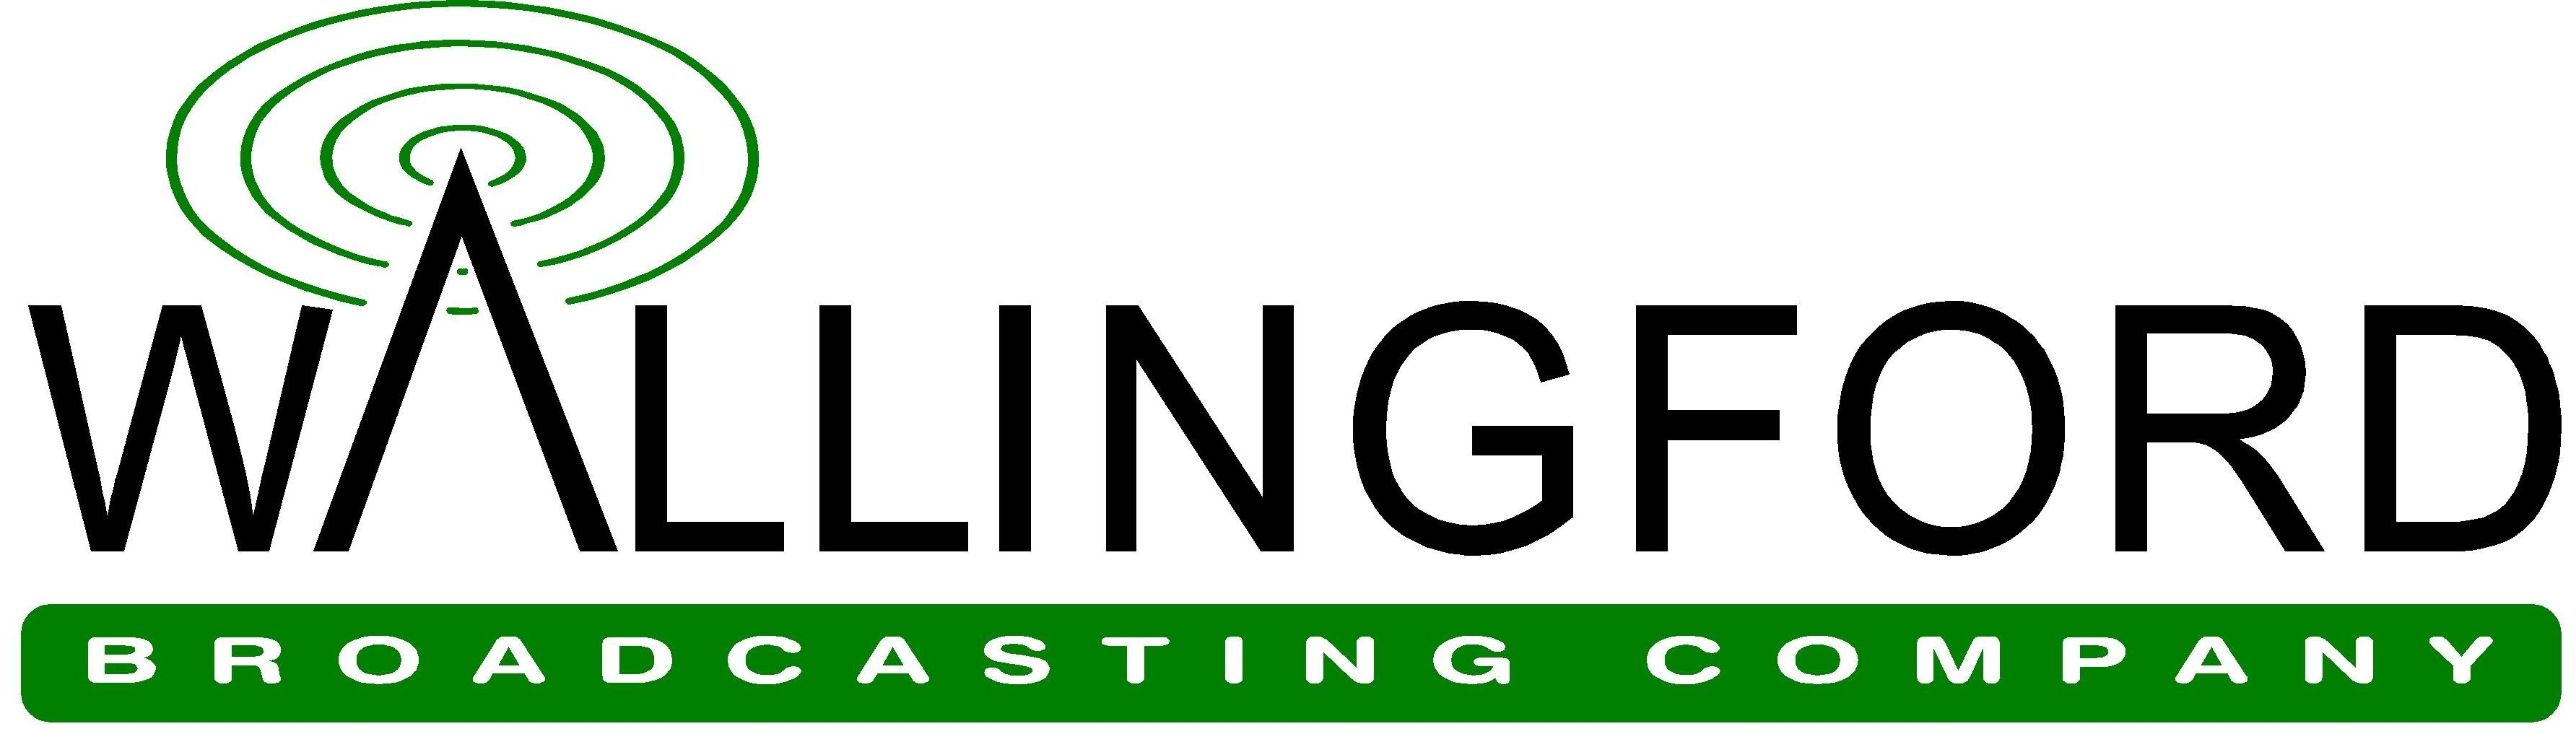 wallingford%20logo